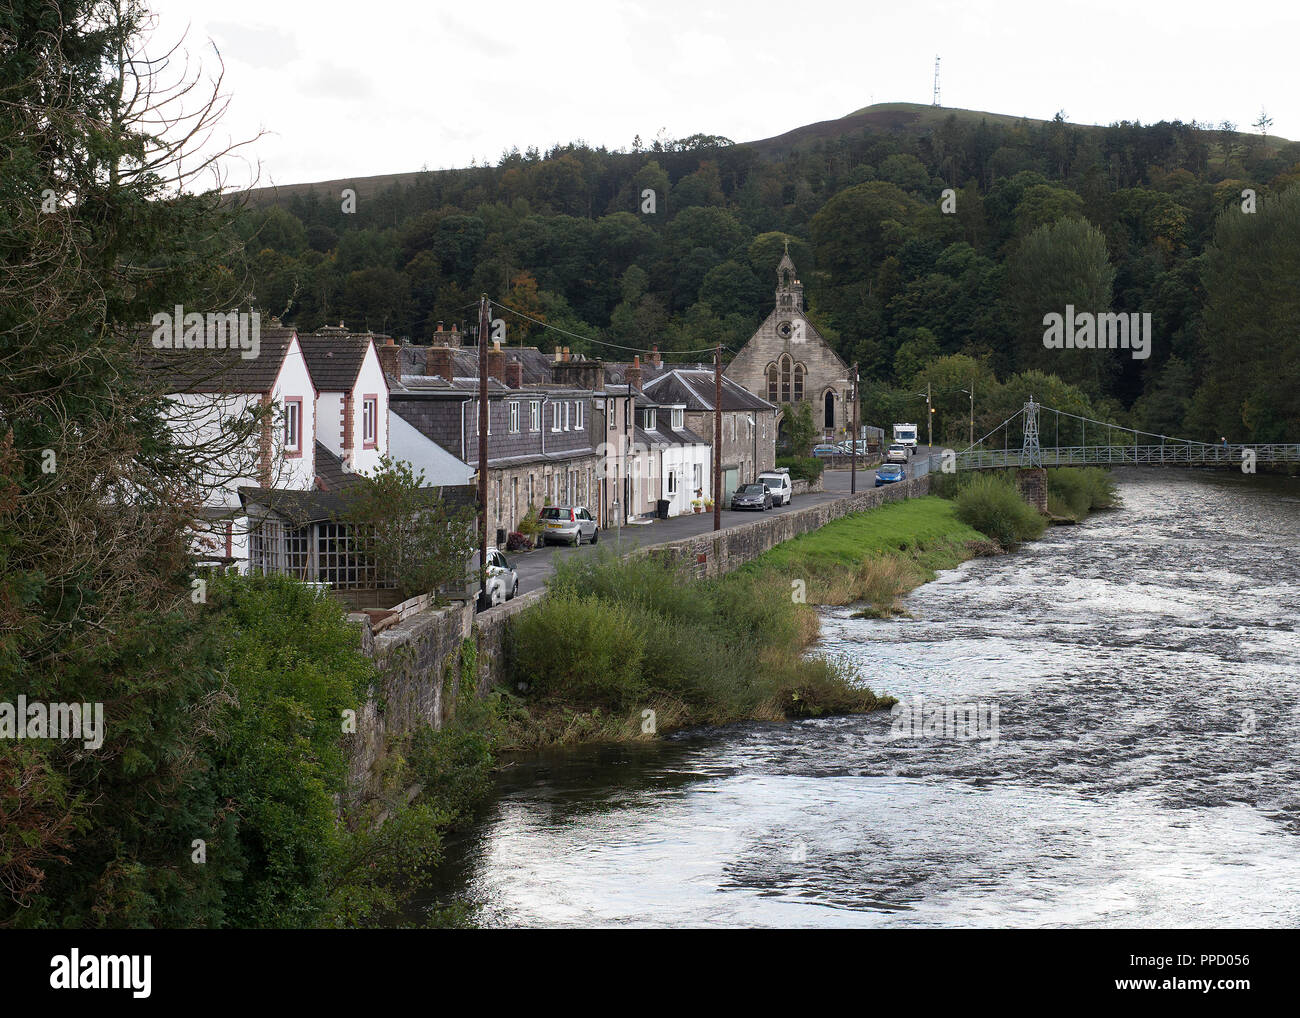 The town of Langholm where the local community are growing chillis as a community. Stock Photo